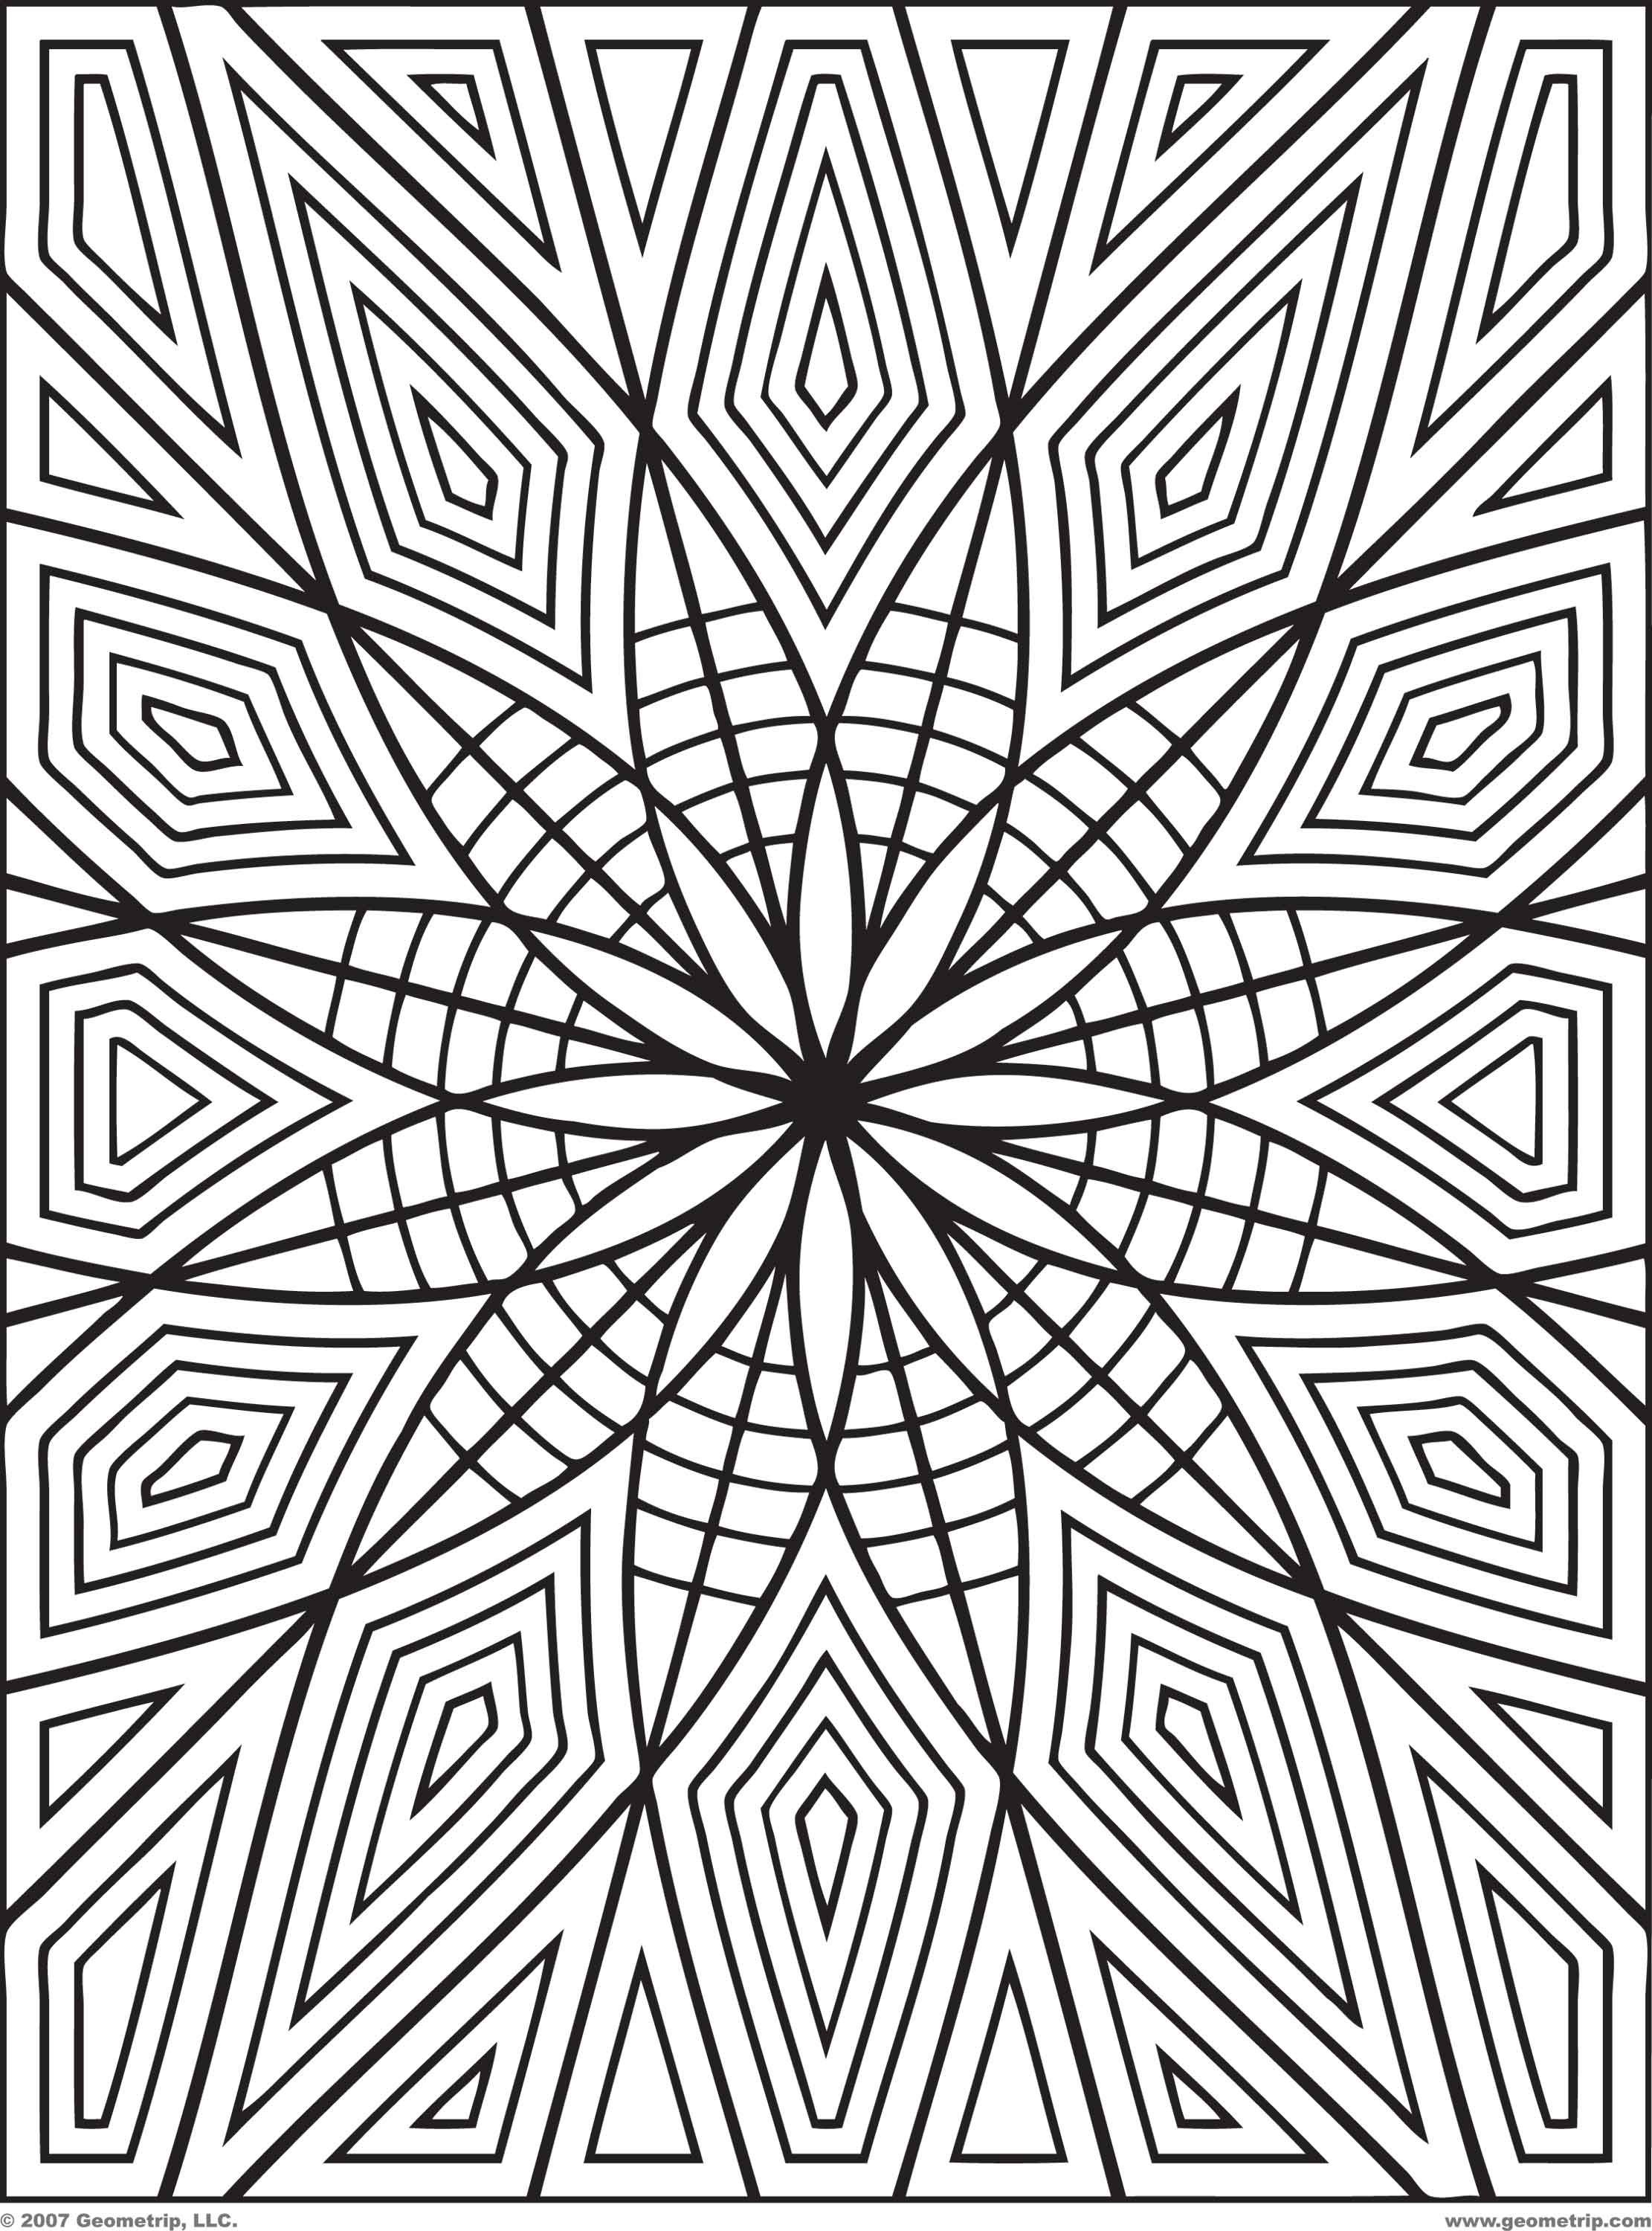 Geometric Coloring Pages For Adults Coloring Home Coloring Pages Free Printables Geometric Designs